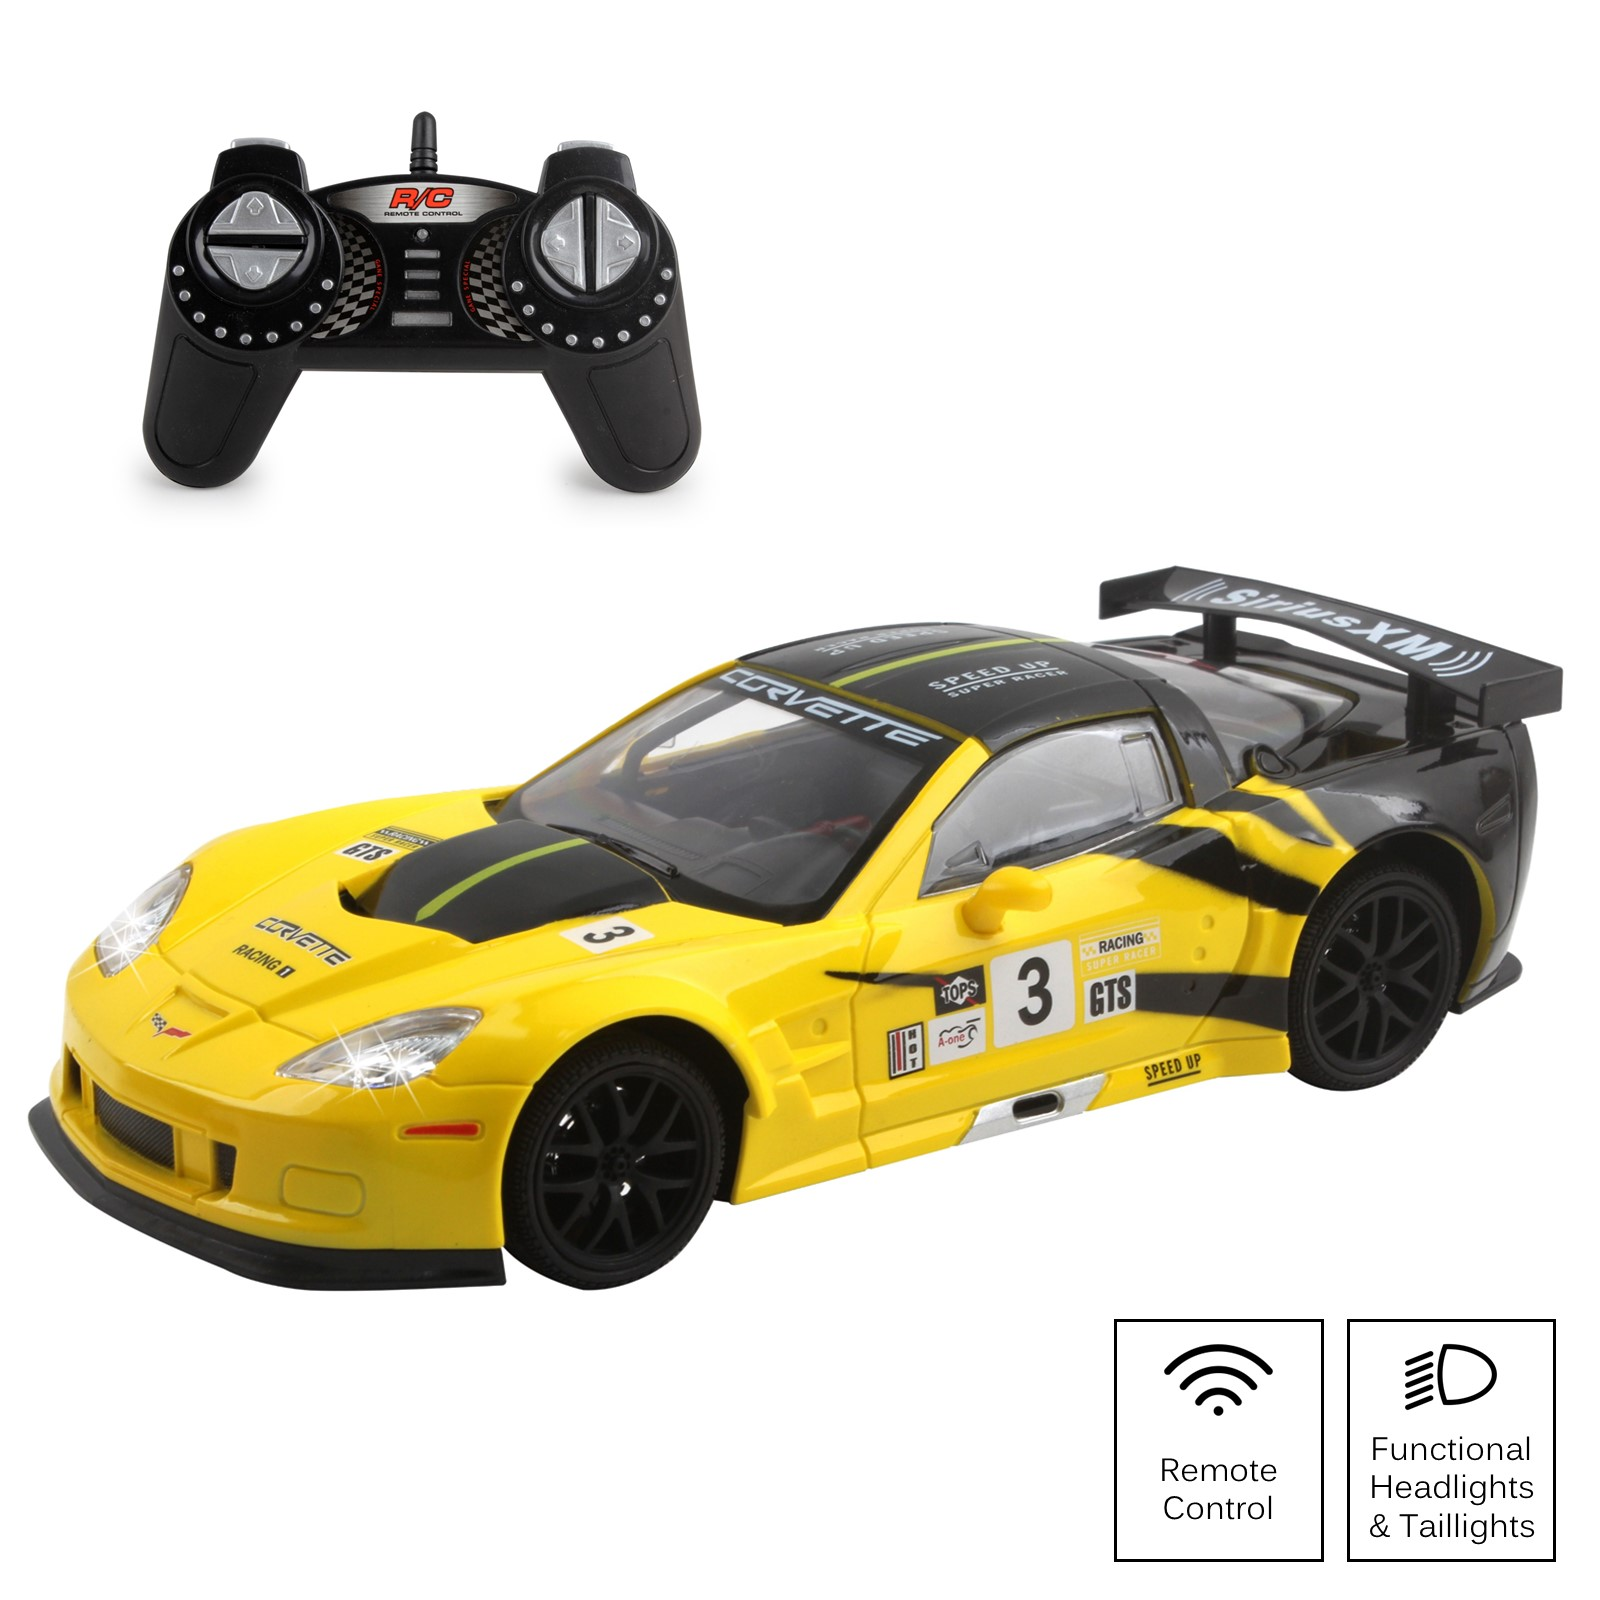 Vokodo RC Super Car 1:18 Scale Remote Control Full Function Corvette with Working LED Headlights Easy to Operate Kids Toy Race Vehicle Perfect Exotic Sports Model Great Gift for Children Boys Girls